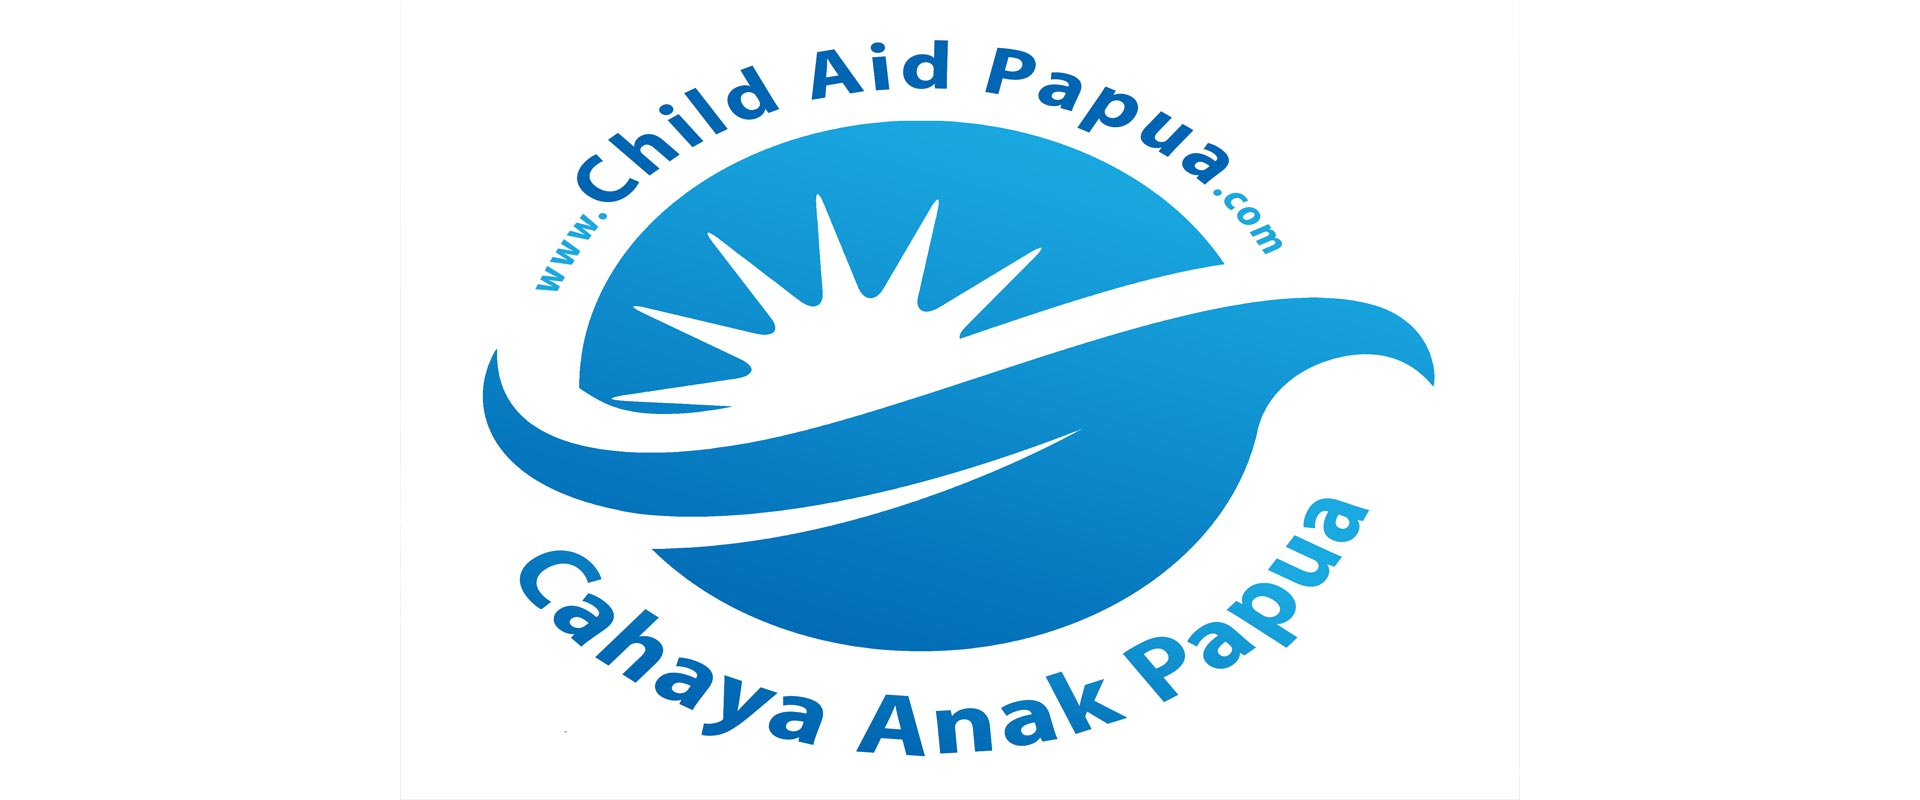 Child-Aid-Papua-header